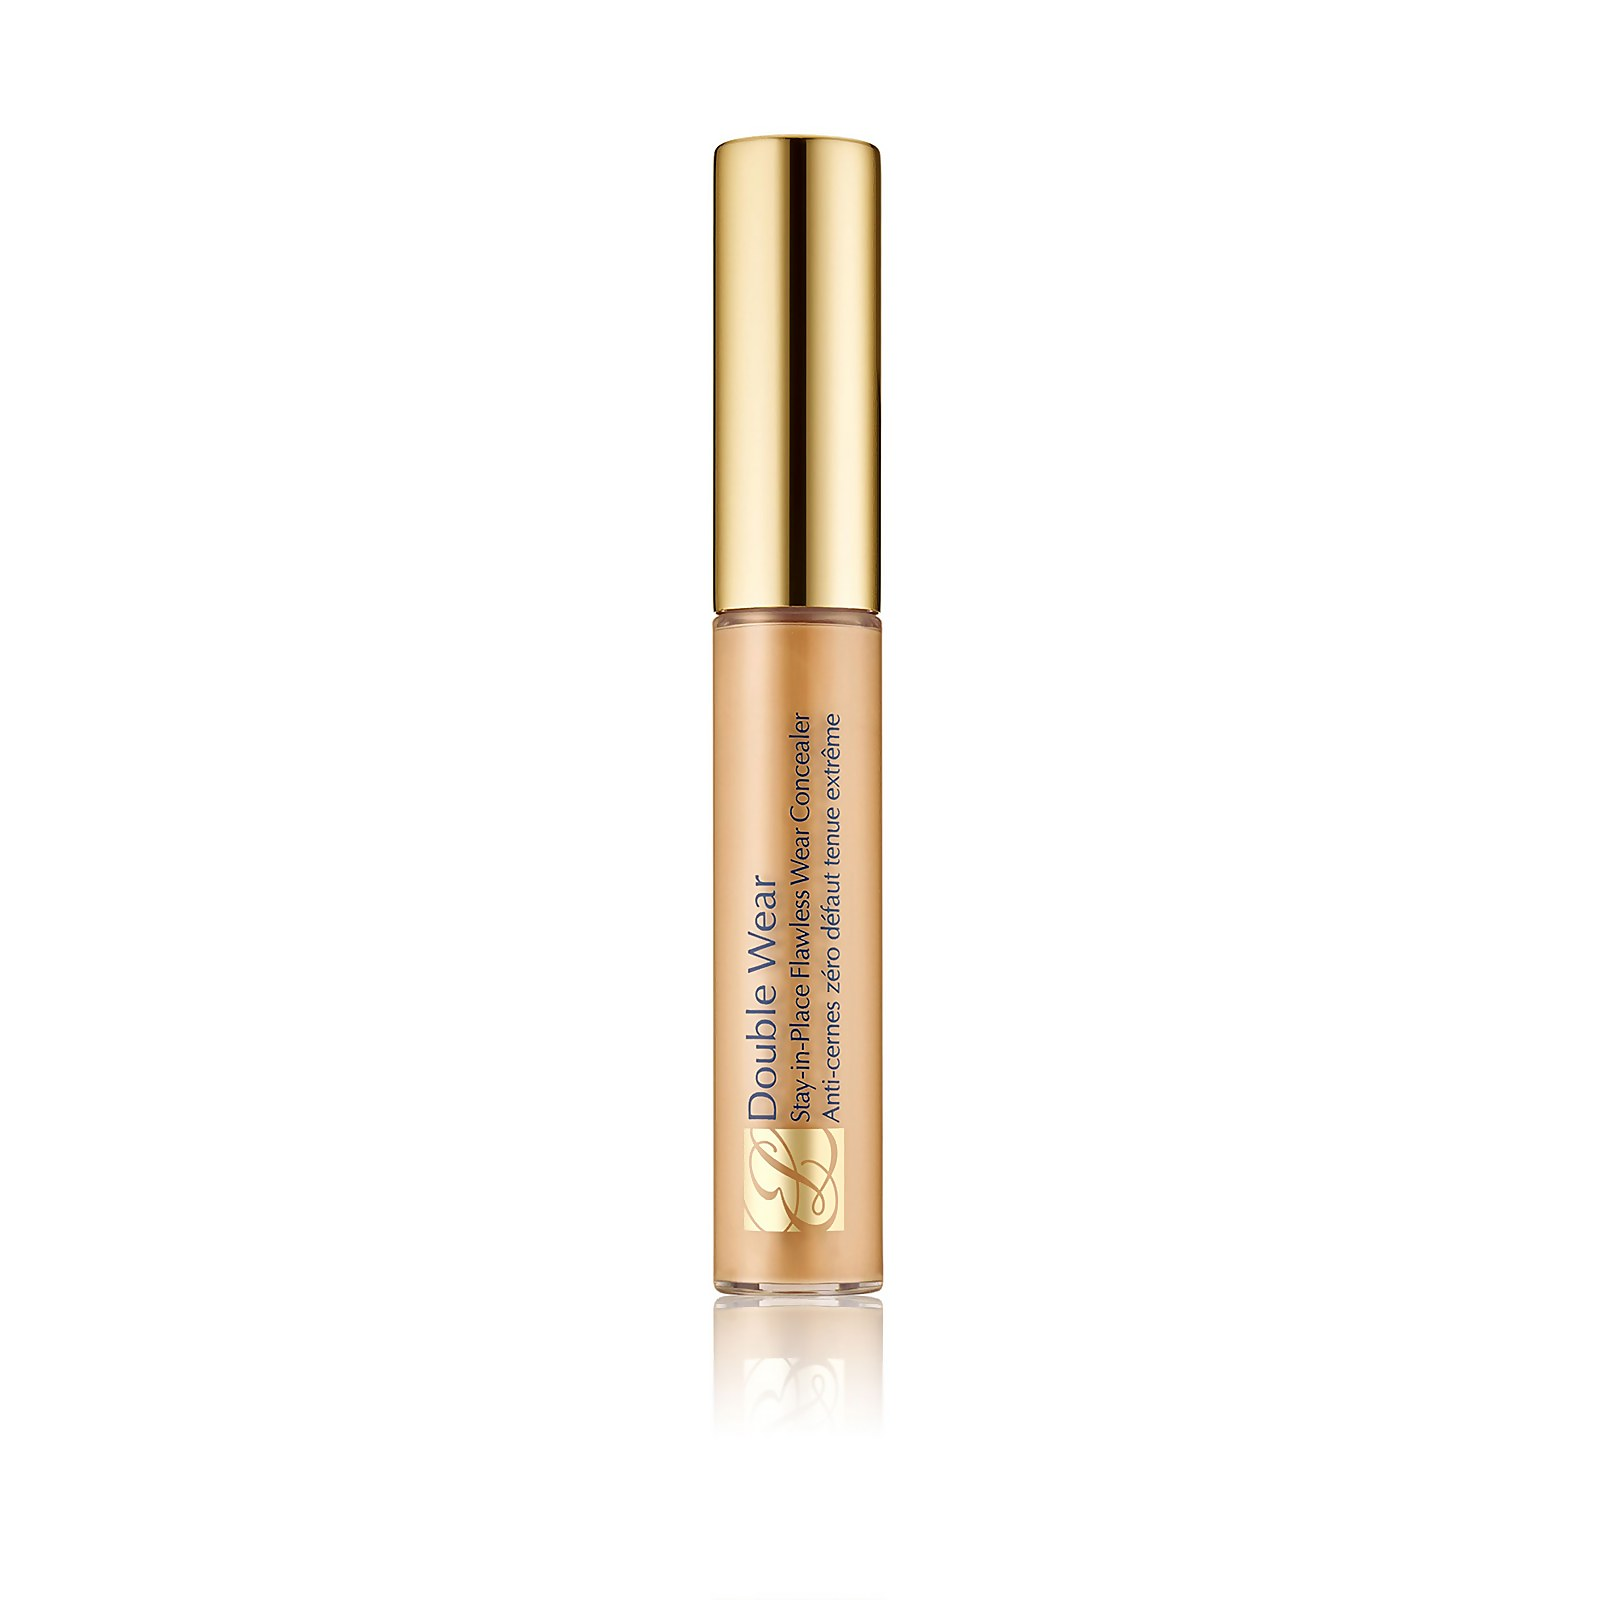 Estée Lauder Double Wear Stay-in-Place Flawless Wear Concealer 7ml (Various Shades) - 2W Light Medium